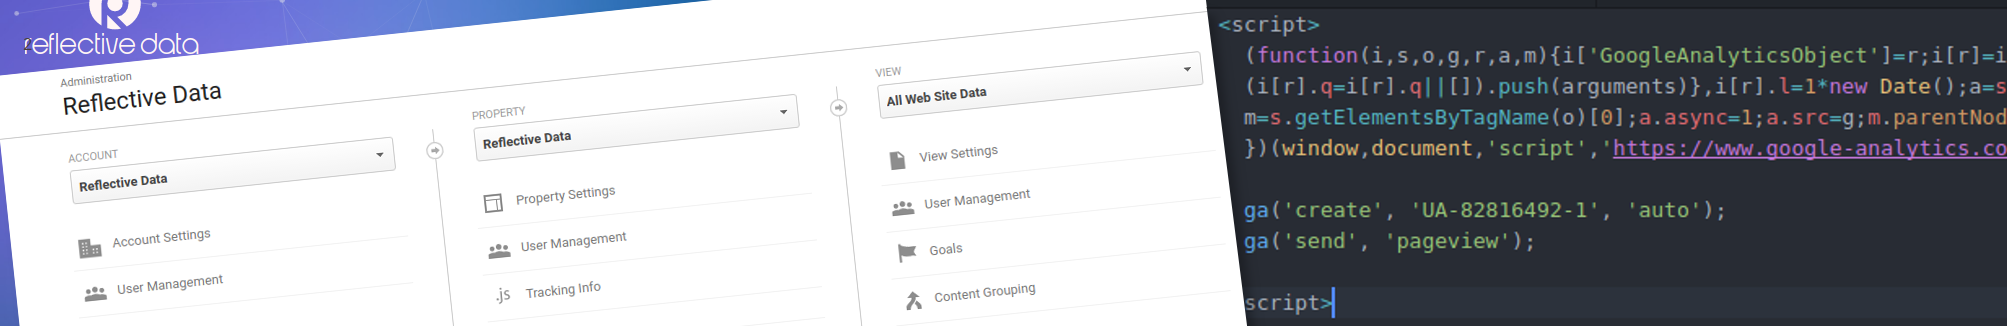 Reflective Data Setting Up Google Analytics